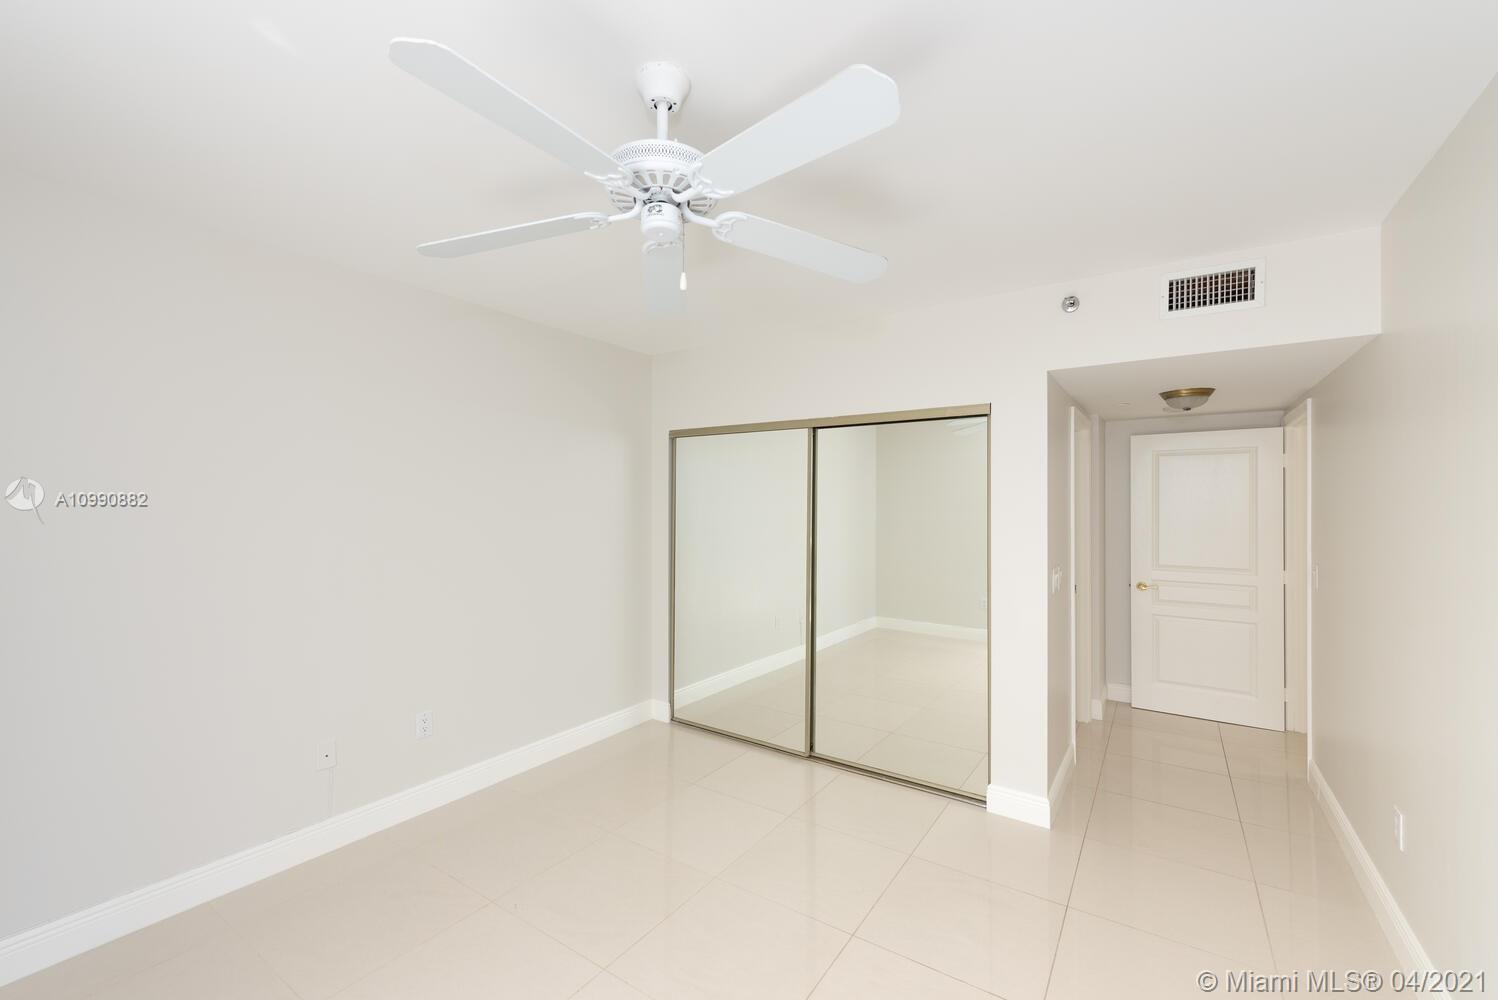 Photo of 8925 Collins Ave #2H, Surfside, Florida, 33154 - Third bedroom virtually staged.